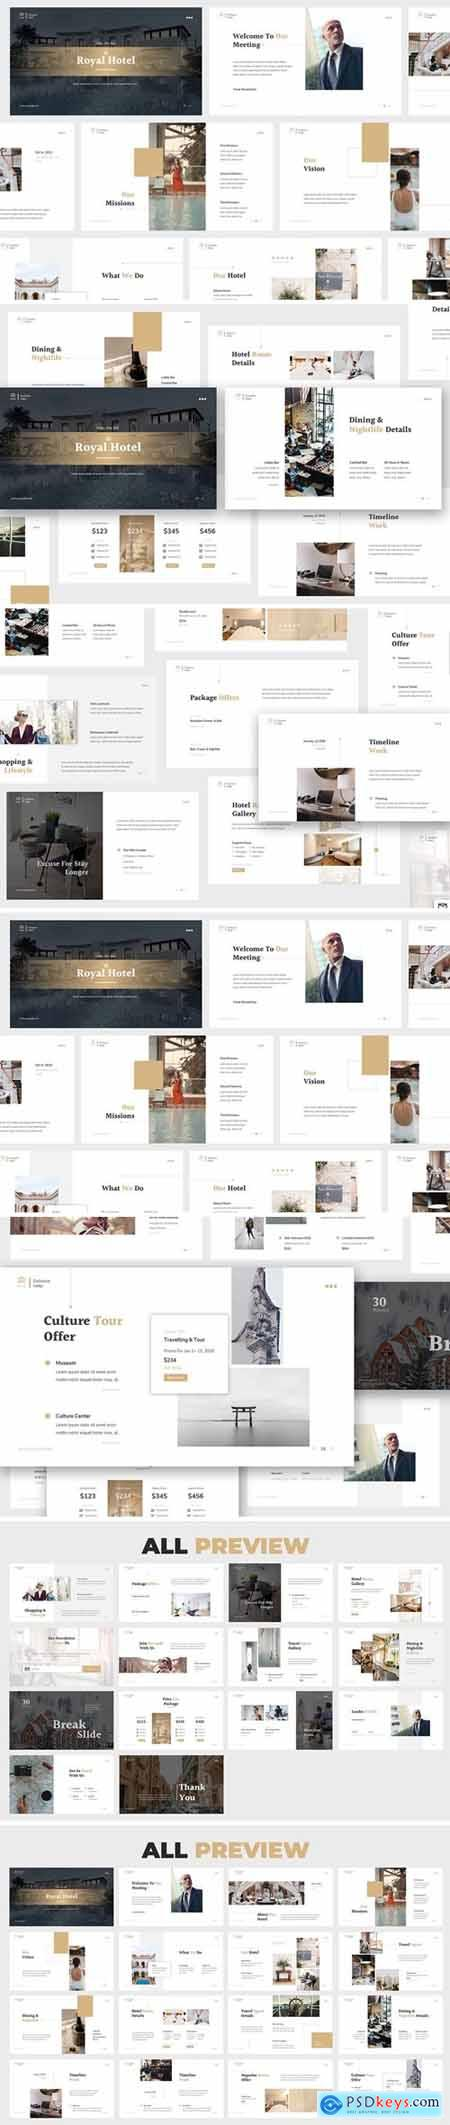 Hotel Powerpoint, Keynote and Google Slides Templates